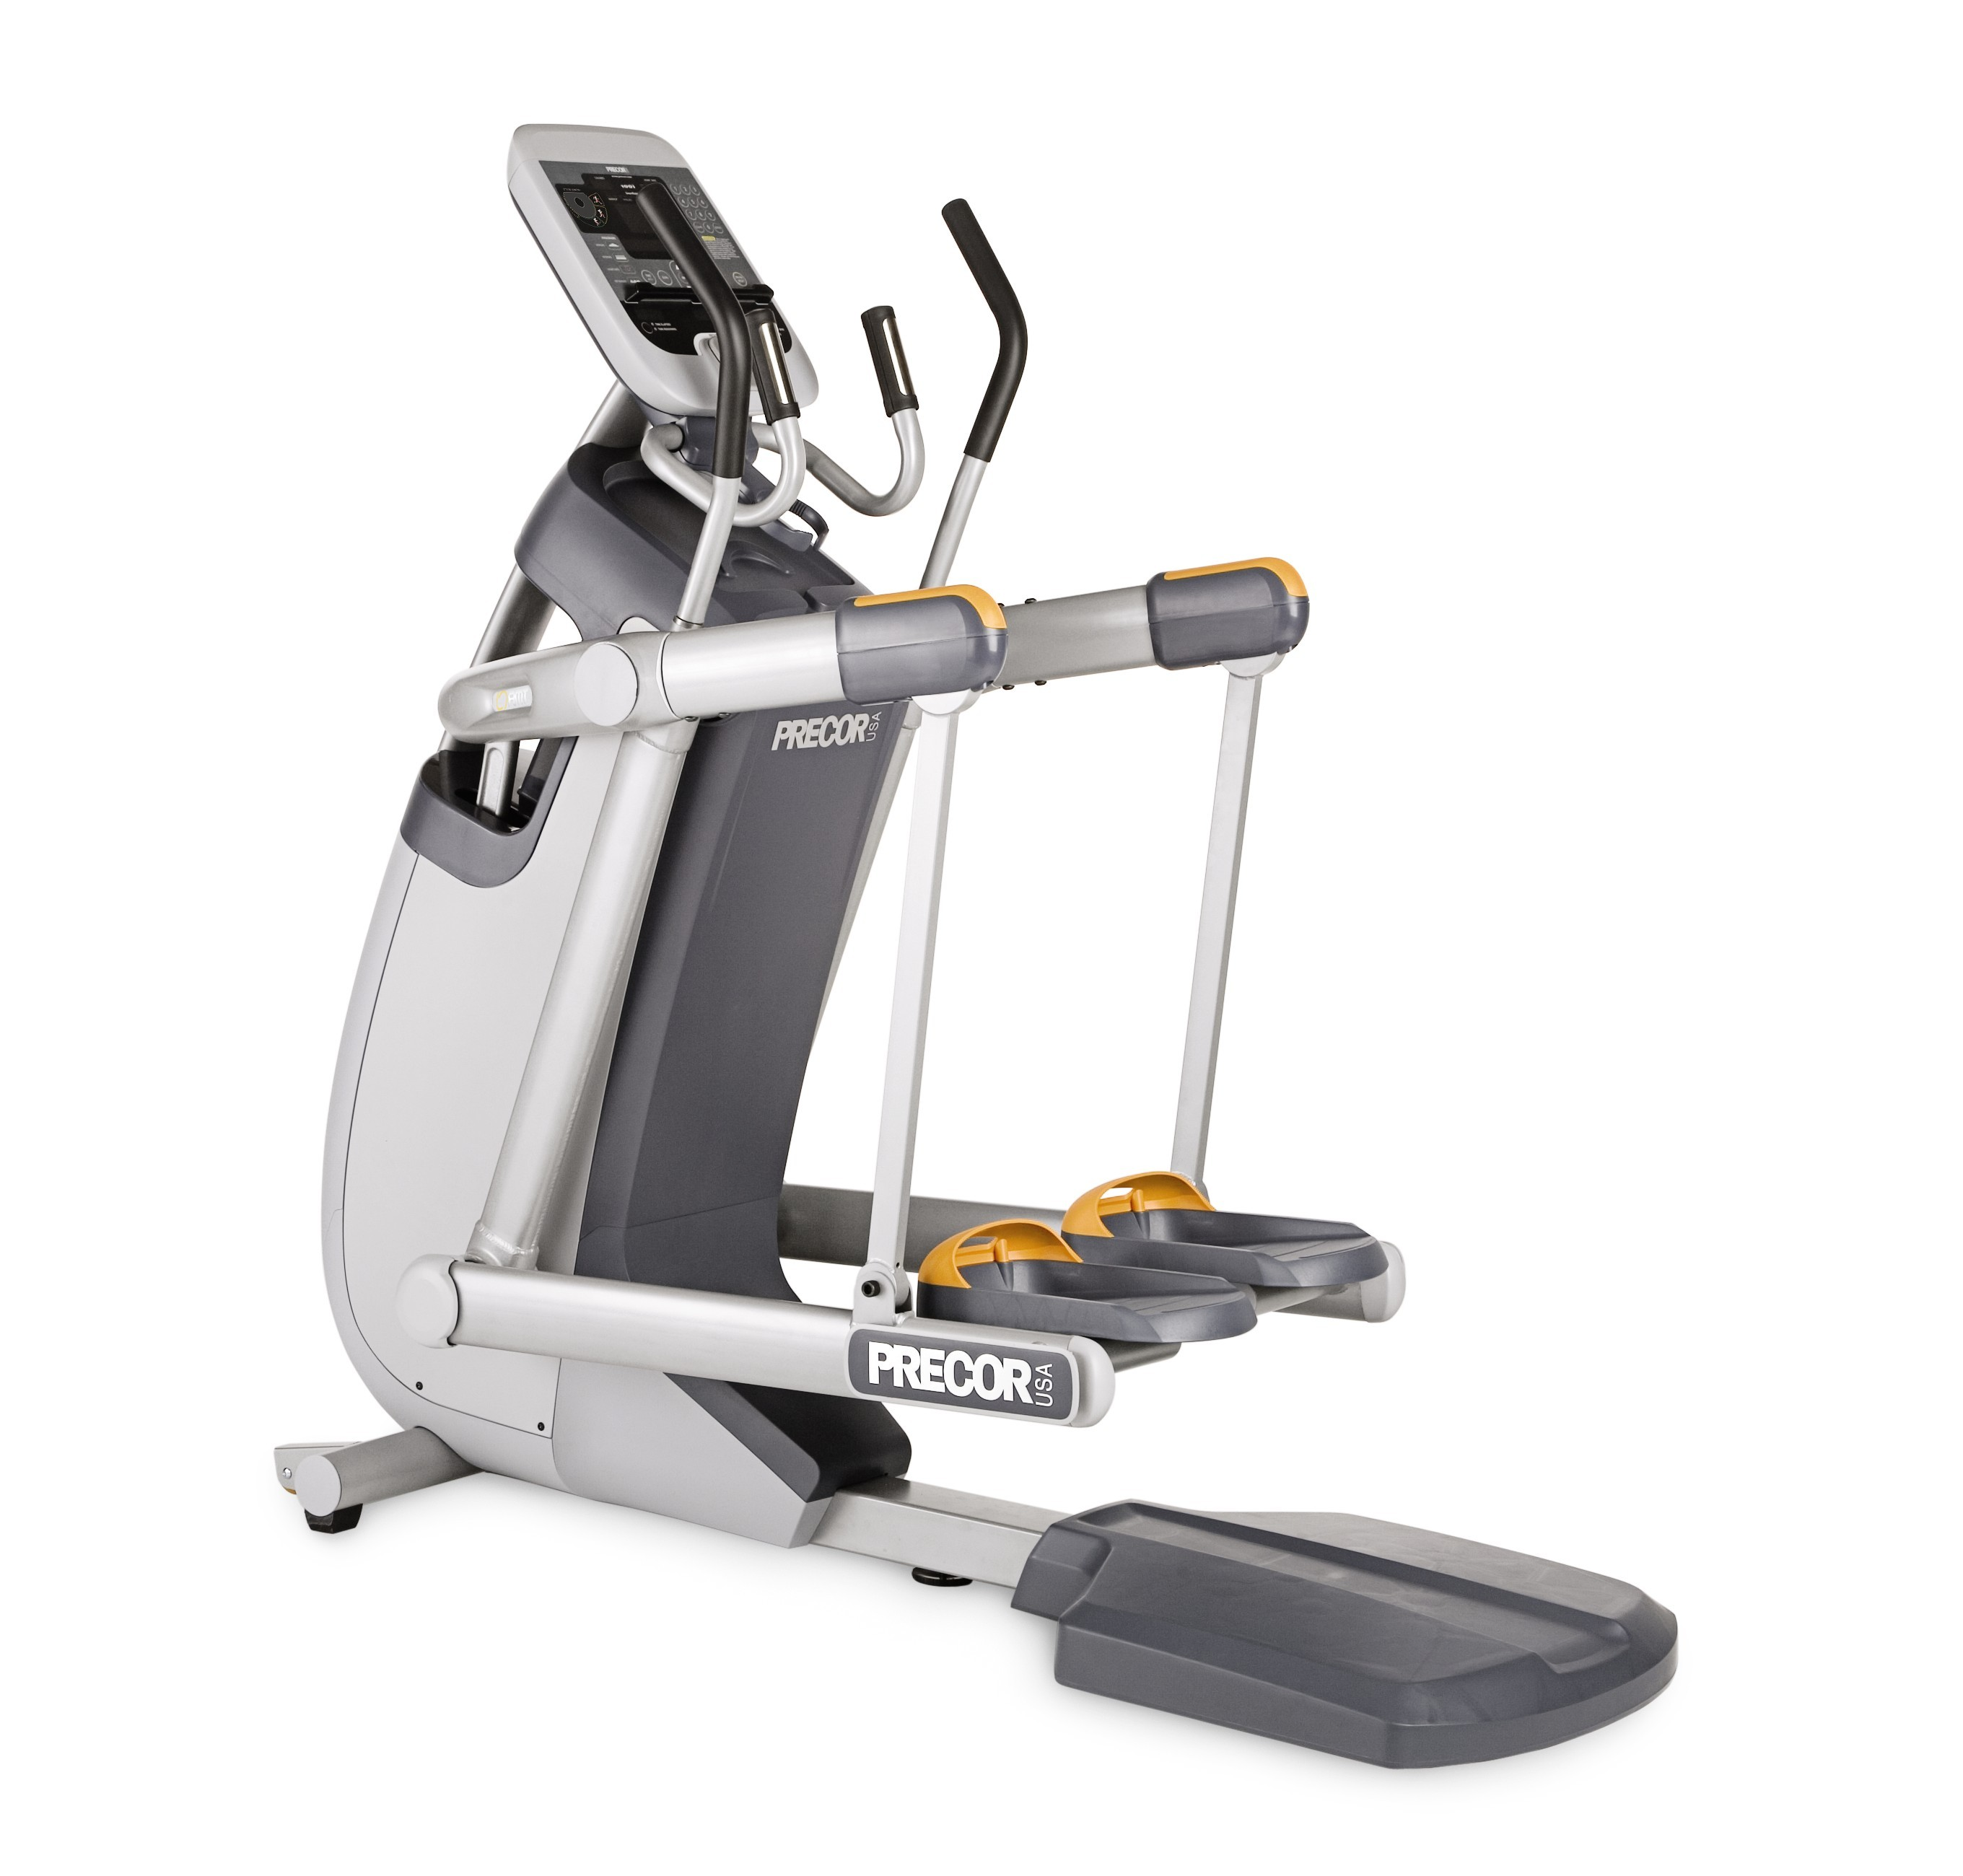 Precor AMT100i elliptical - Adaptive Motion Trainer